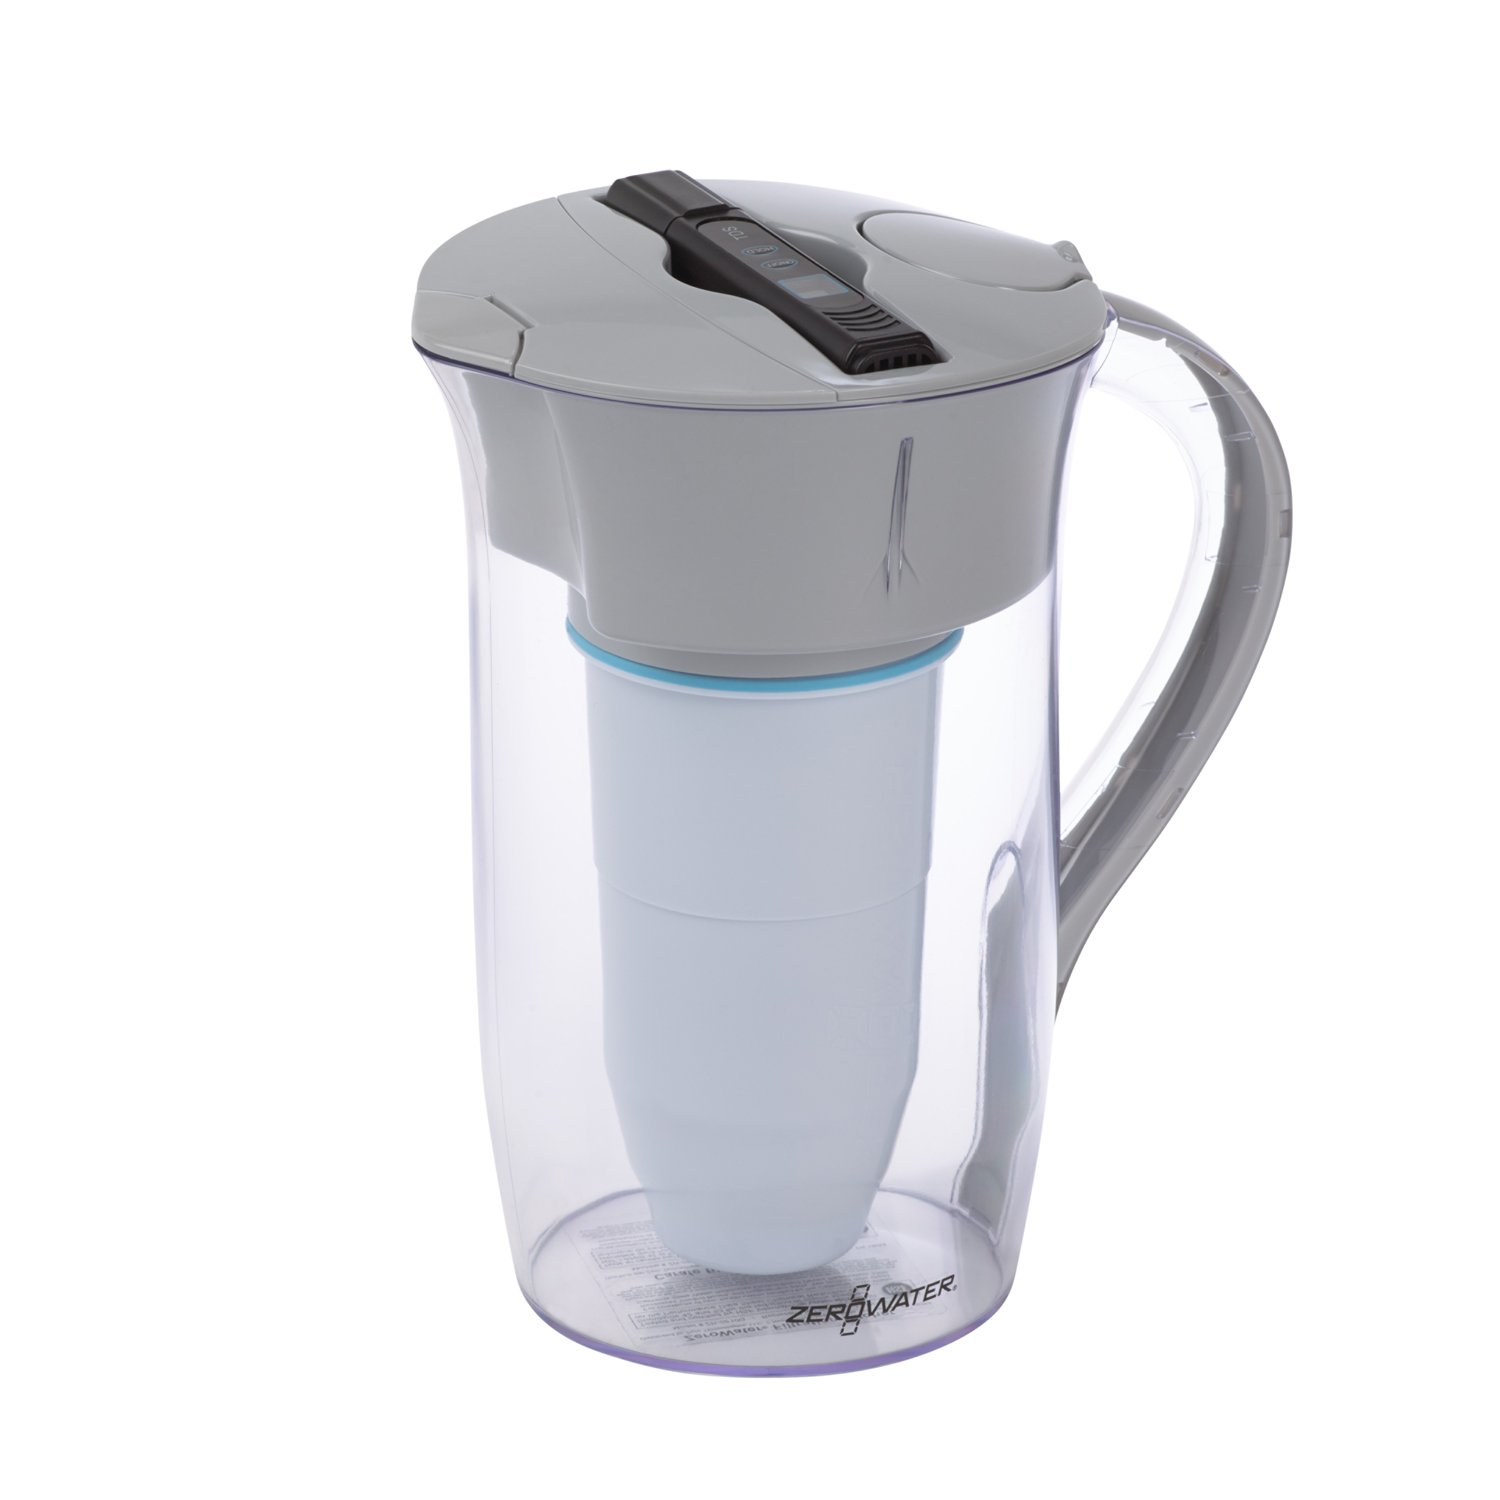 ZeroWater 8 Cup Round Pitcher with Free Water Quality Meter ZR-0810G